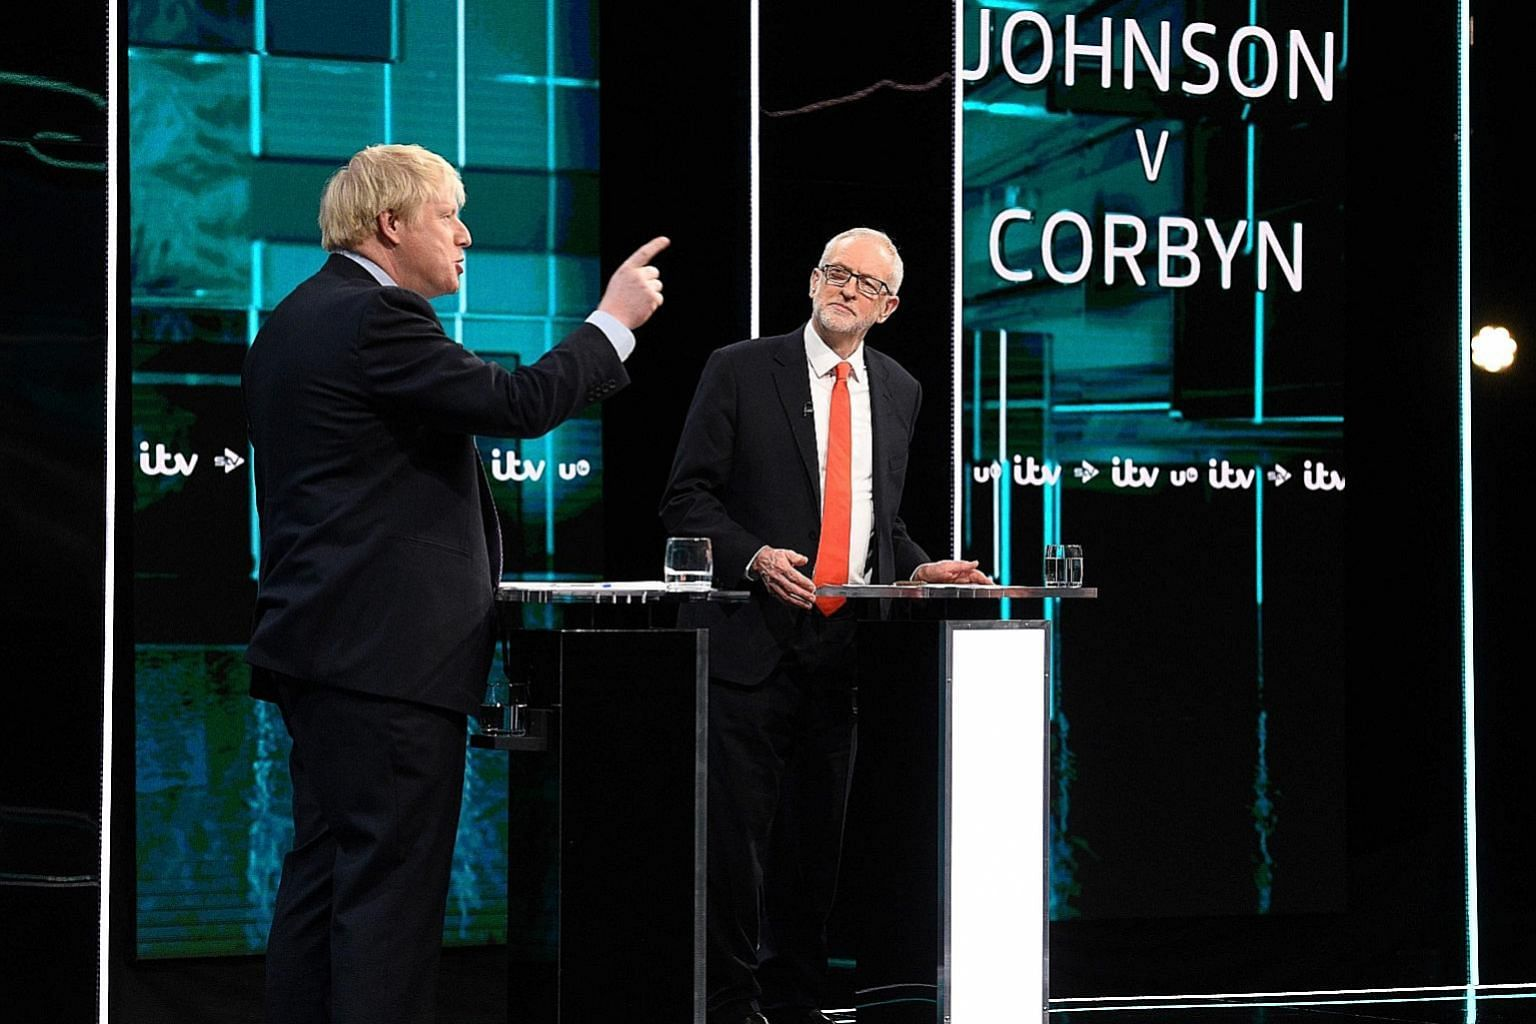 British Prime Minister Boris Johnson (left) and opposition Labour leader Jeremy Corbyn in the debate hosted by ITV on Tuesday. PHOTO: AGENCE FRANCE-PRESSE